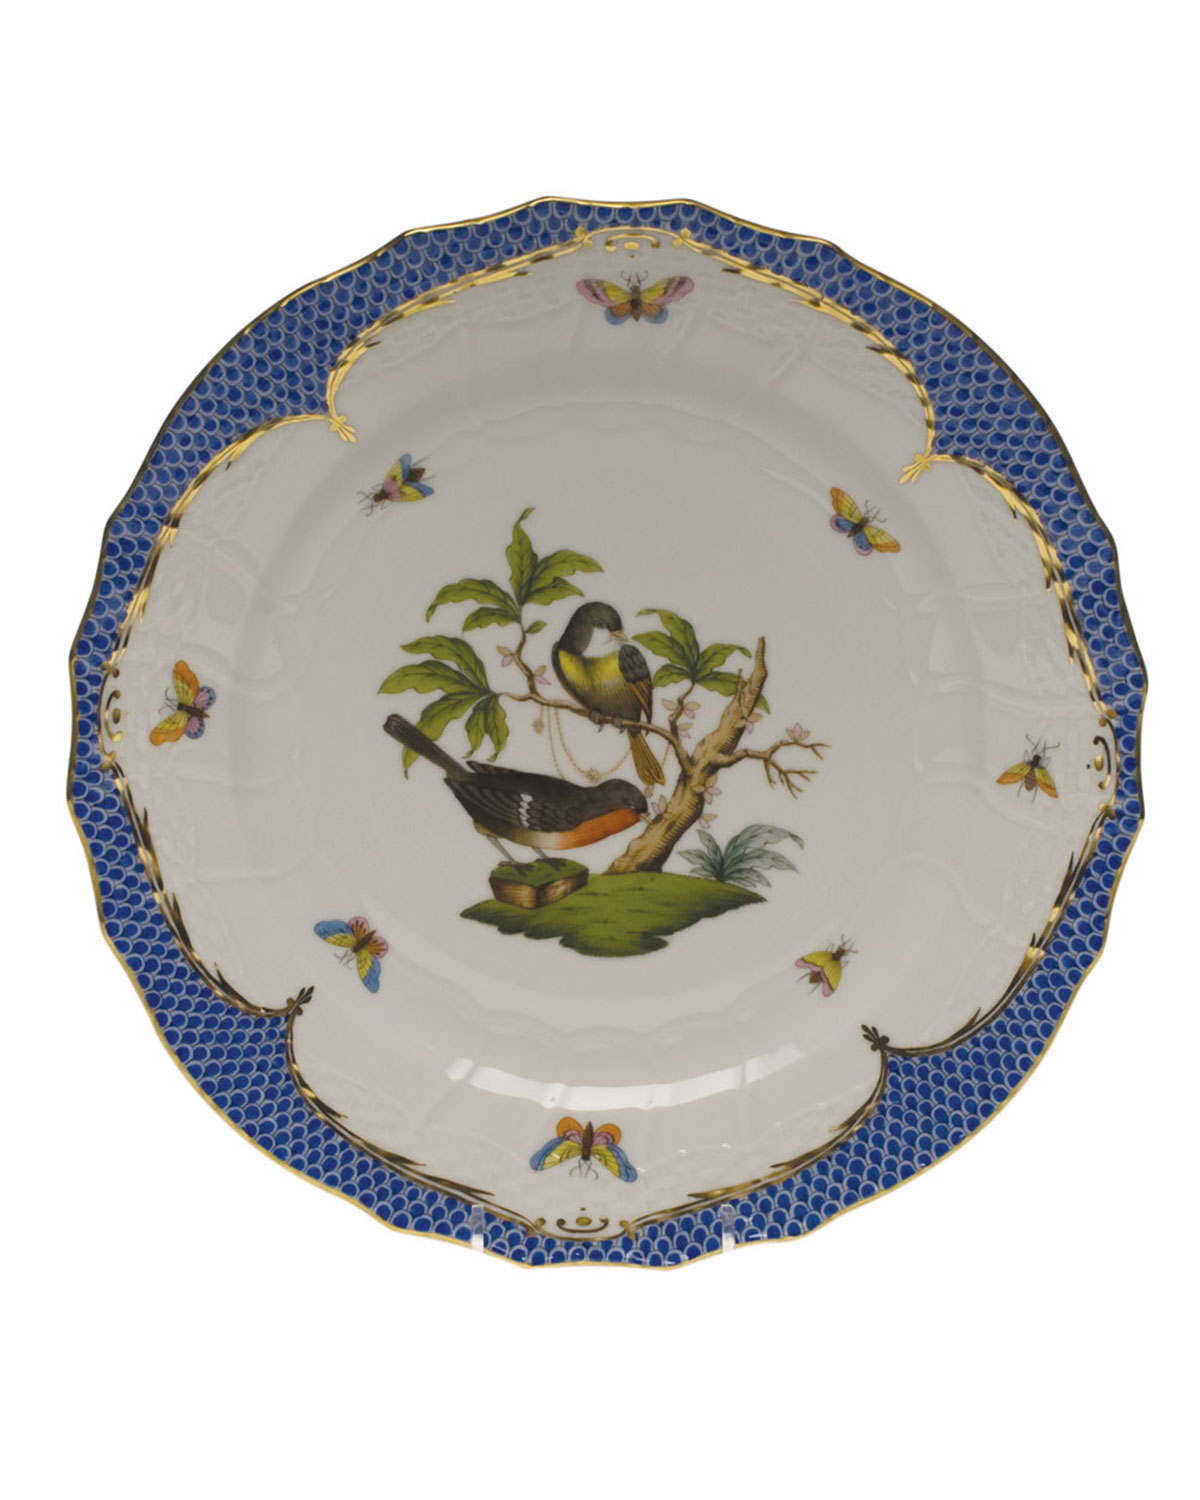 Herend Rothschild Bird Service Plate/Charger 02